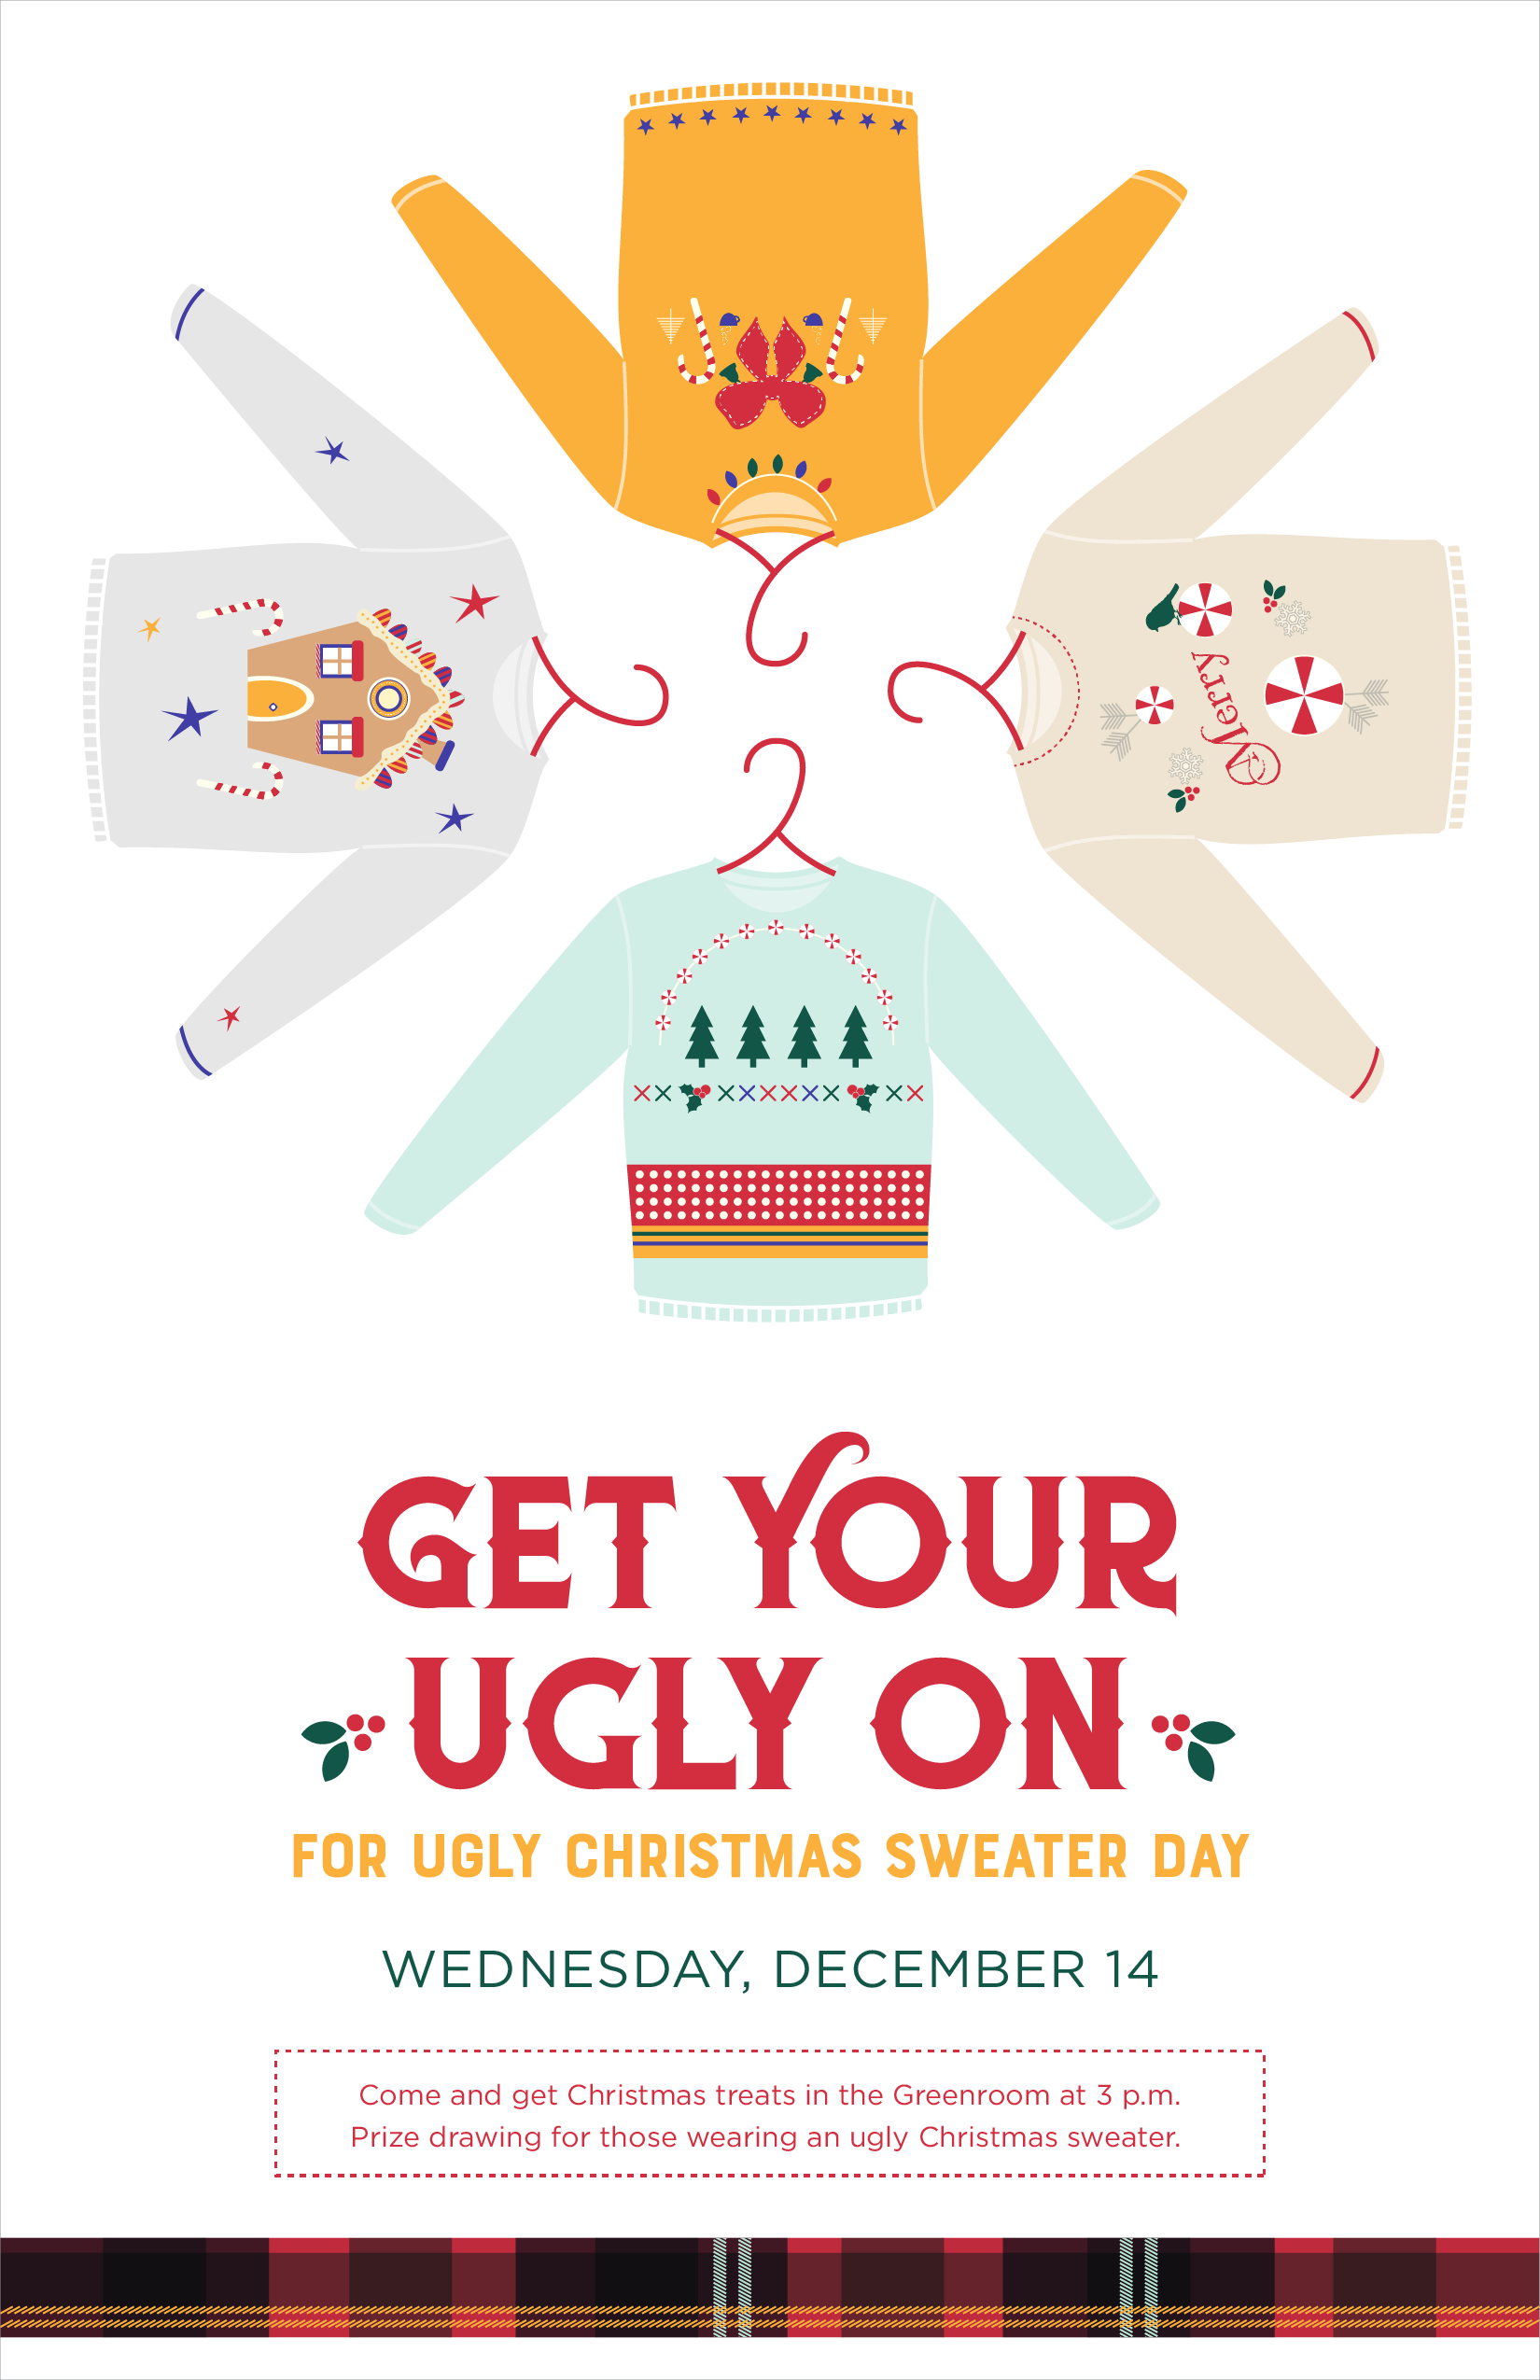 UglyChristmasSweater_Poster_FINAL-01.png